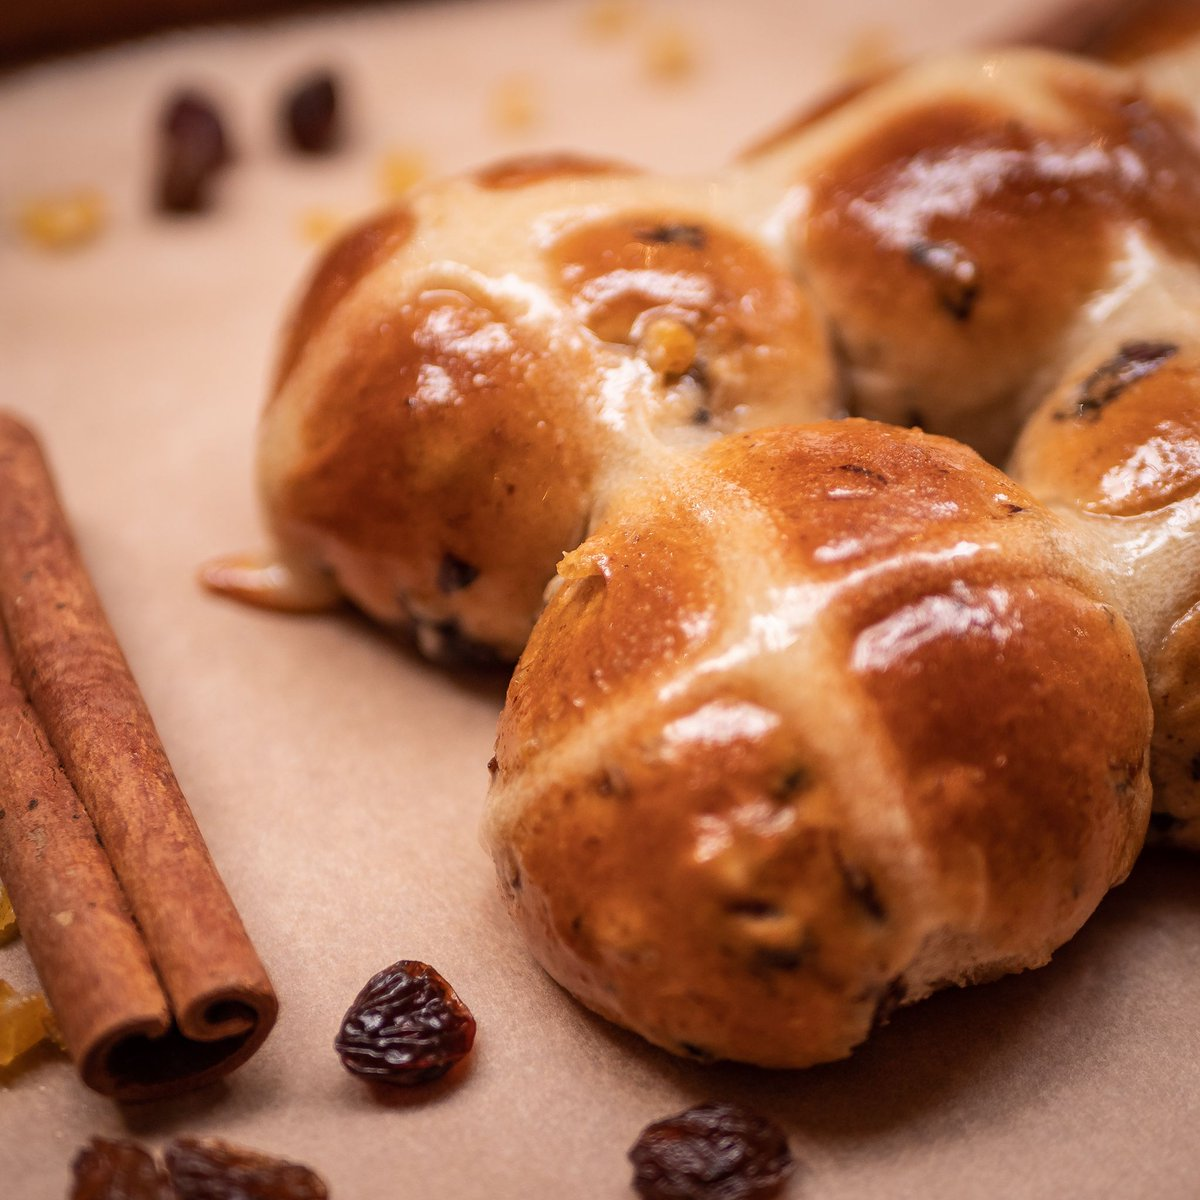 Good News for Good Friday! We'll be giving away Mini Hot Cross Buns at both Barton Arcade and Spinningfields. We've made loads and loads but unfortunately once they're gone... they're gone! If you love them then let us know by tagging us... Happy Easter! 🐇